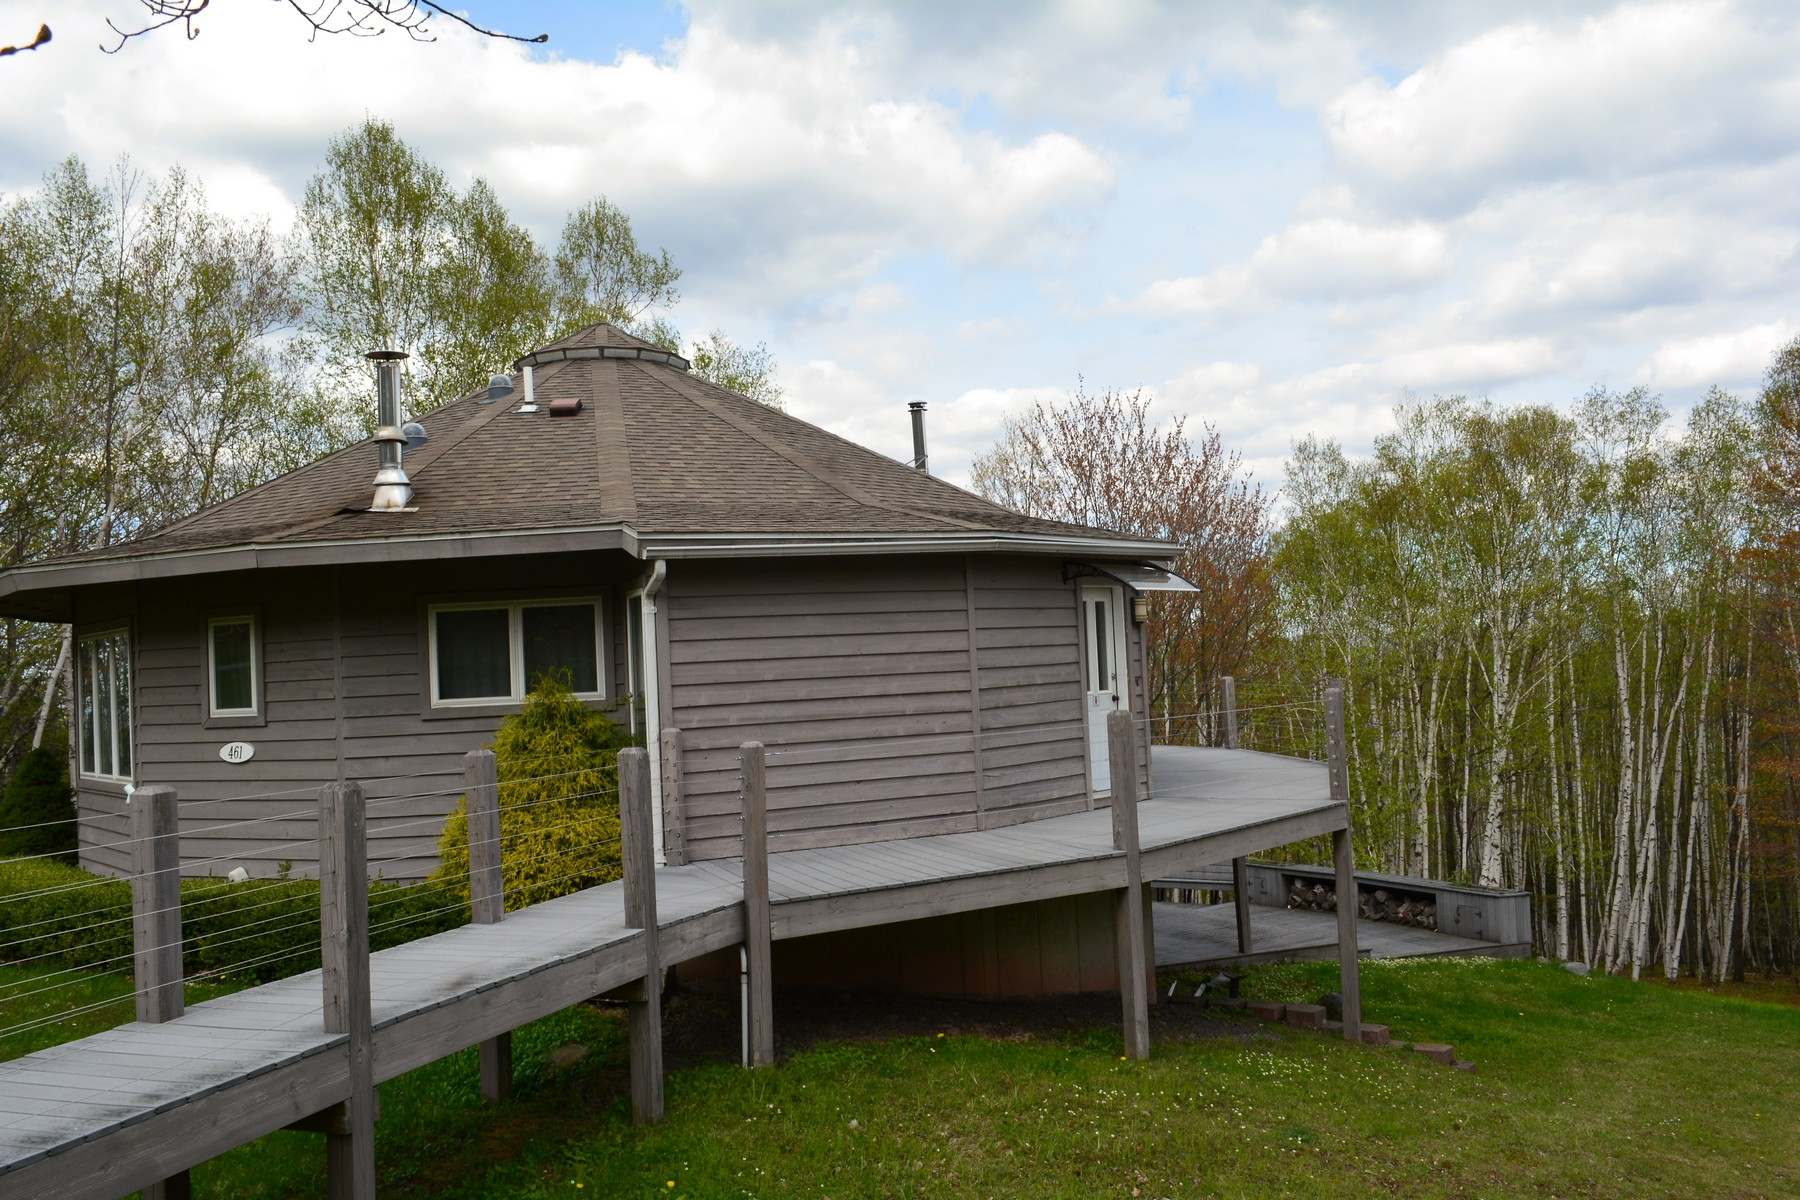 Single Family Home for Sale at Round House with Catskill Mountain Views 461 Beshroner Rd Prattsville, New York 12468 United States